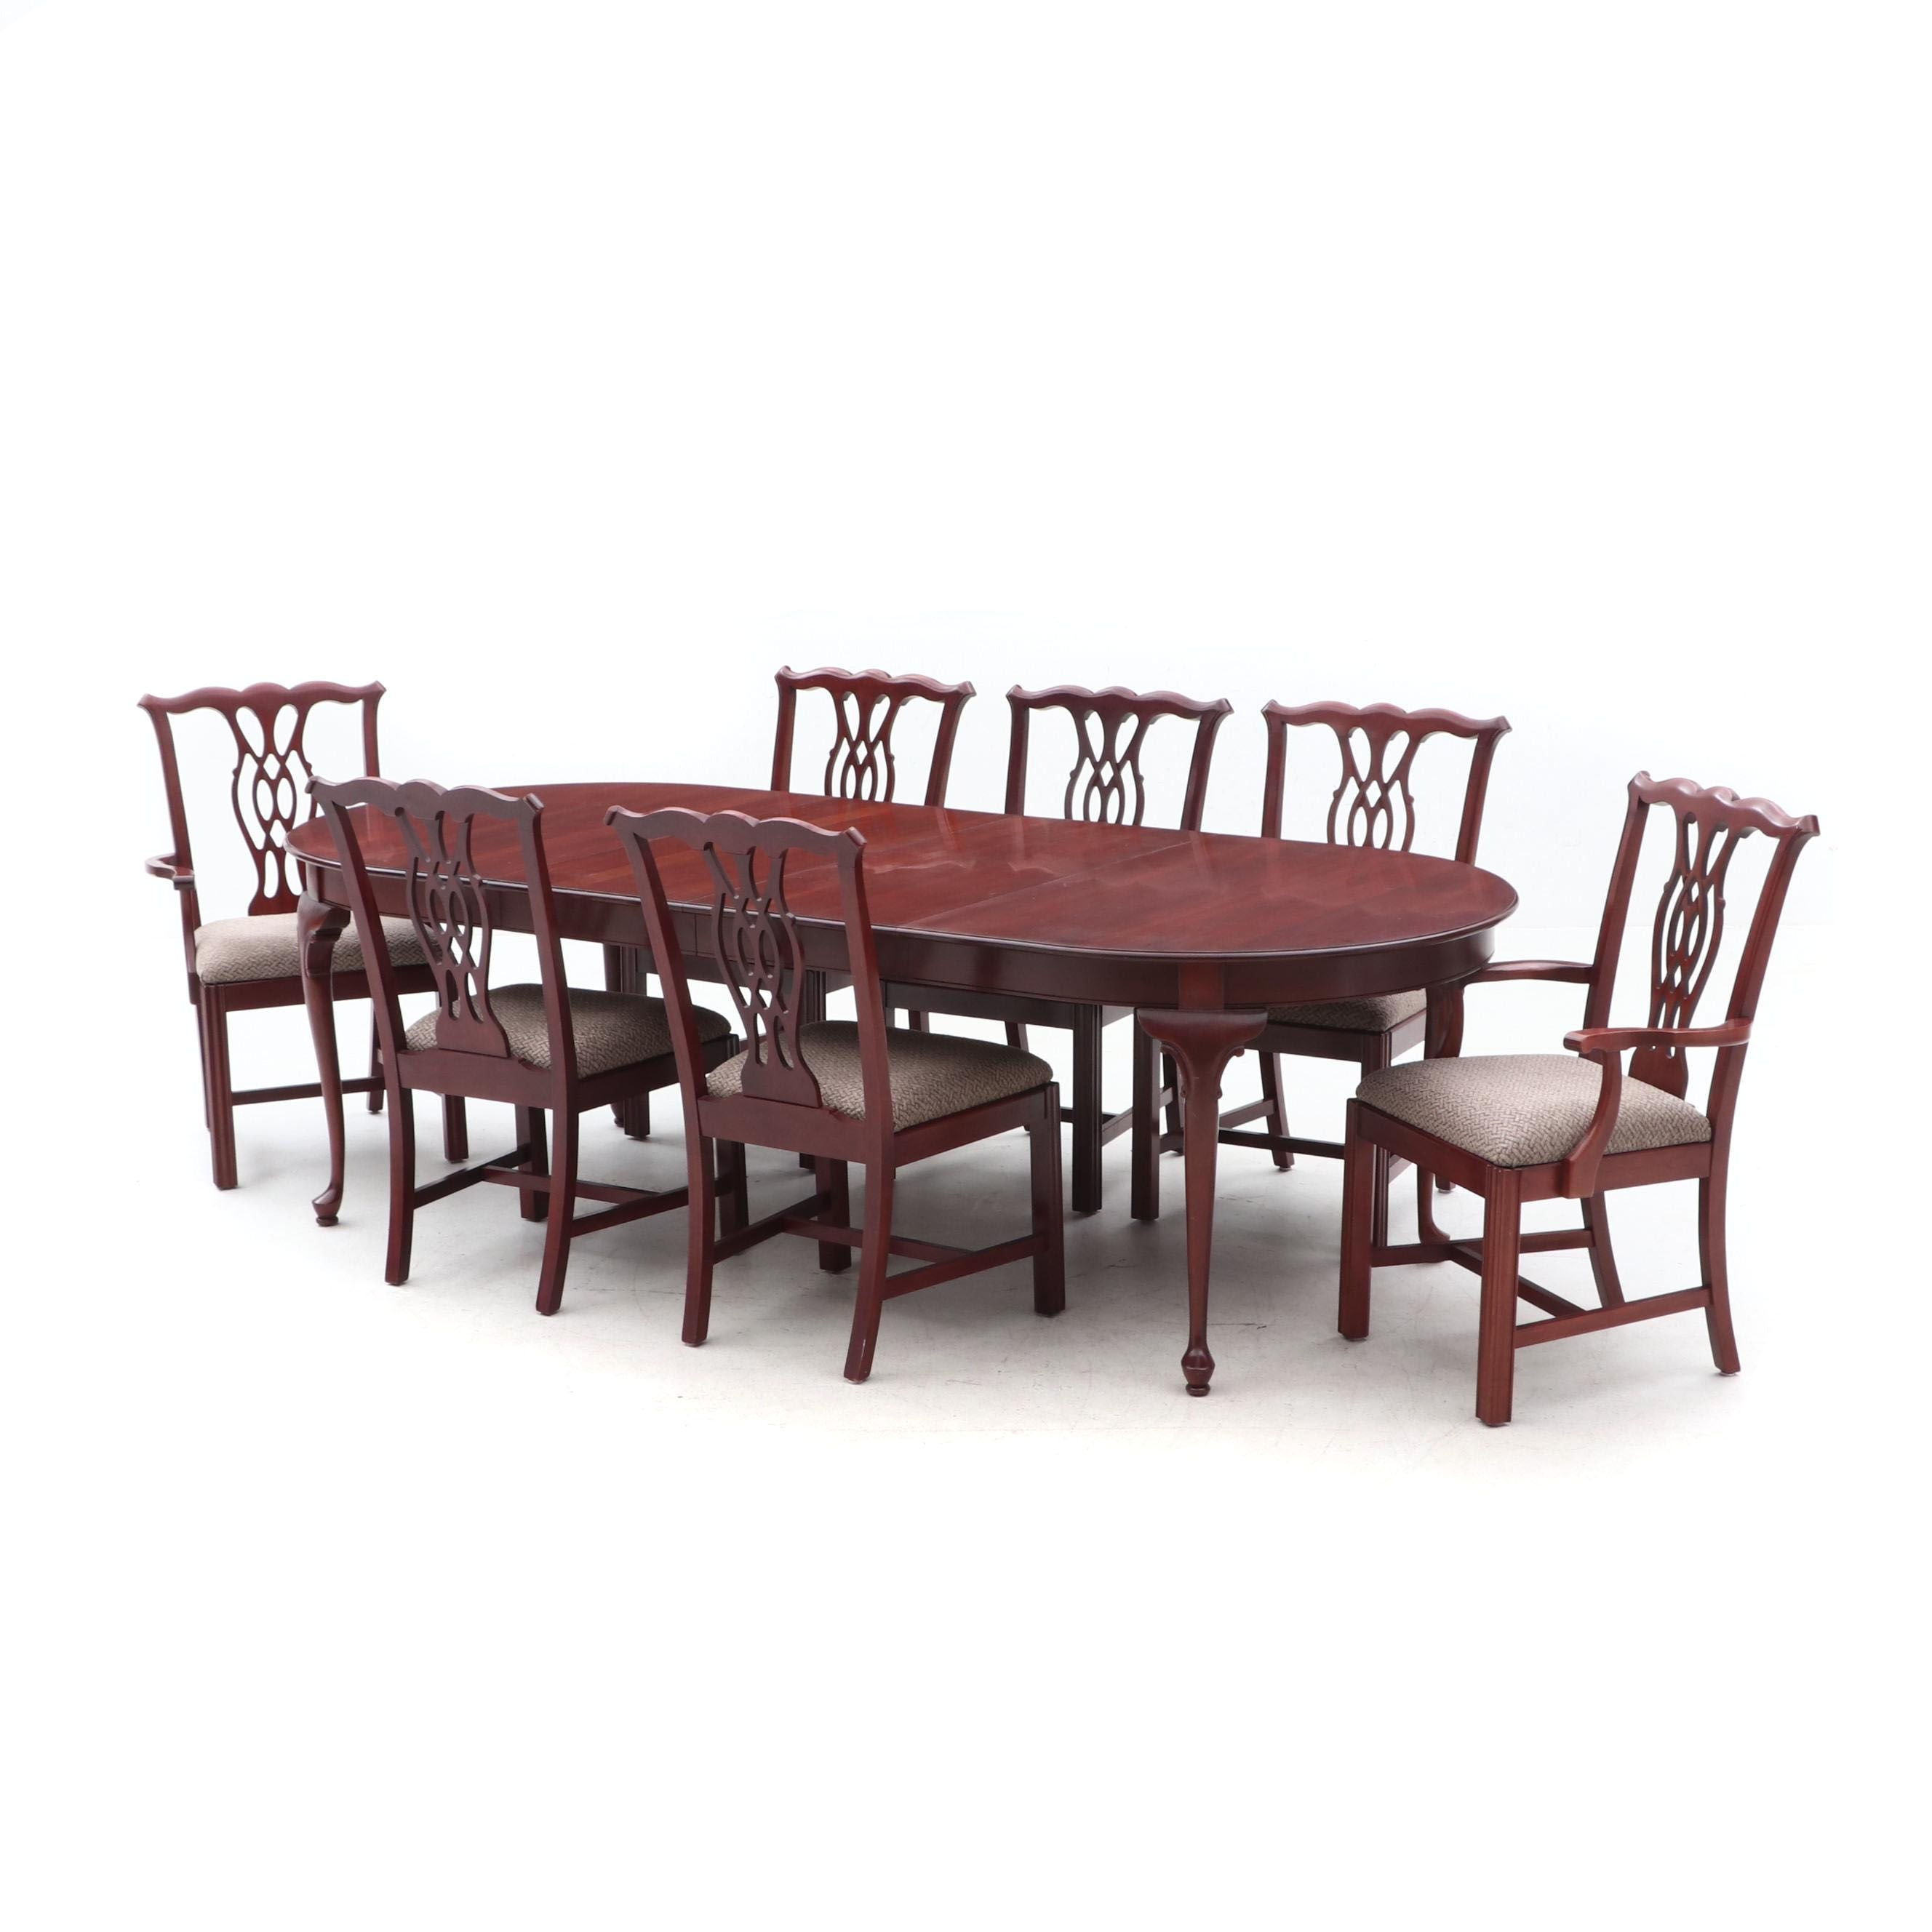 Queen Anne Style Dining Table with Chippendale Style Chairs in Cherry